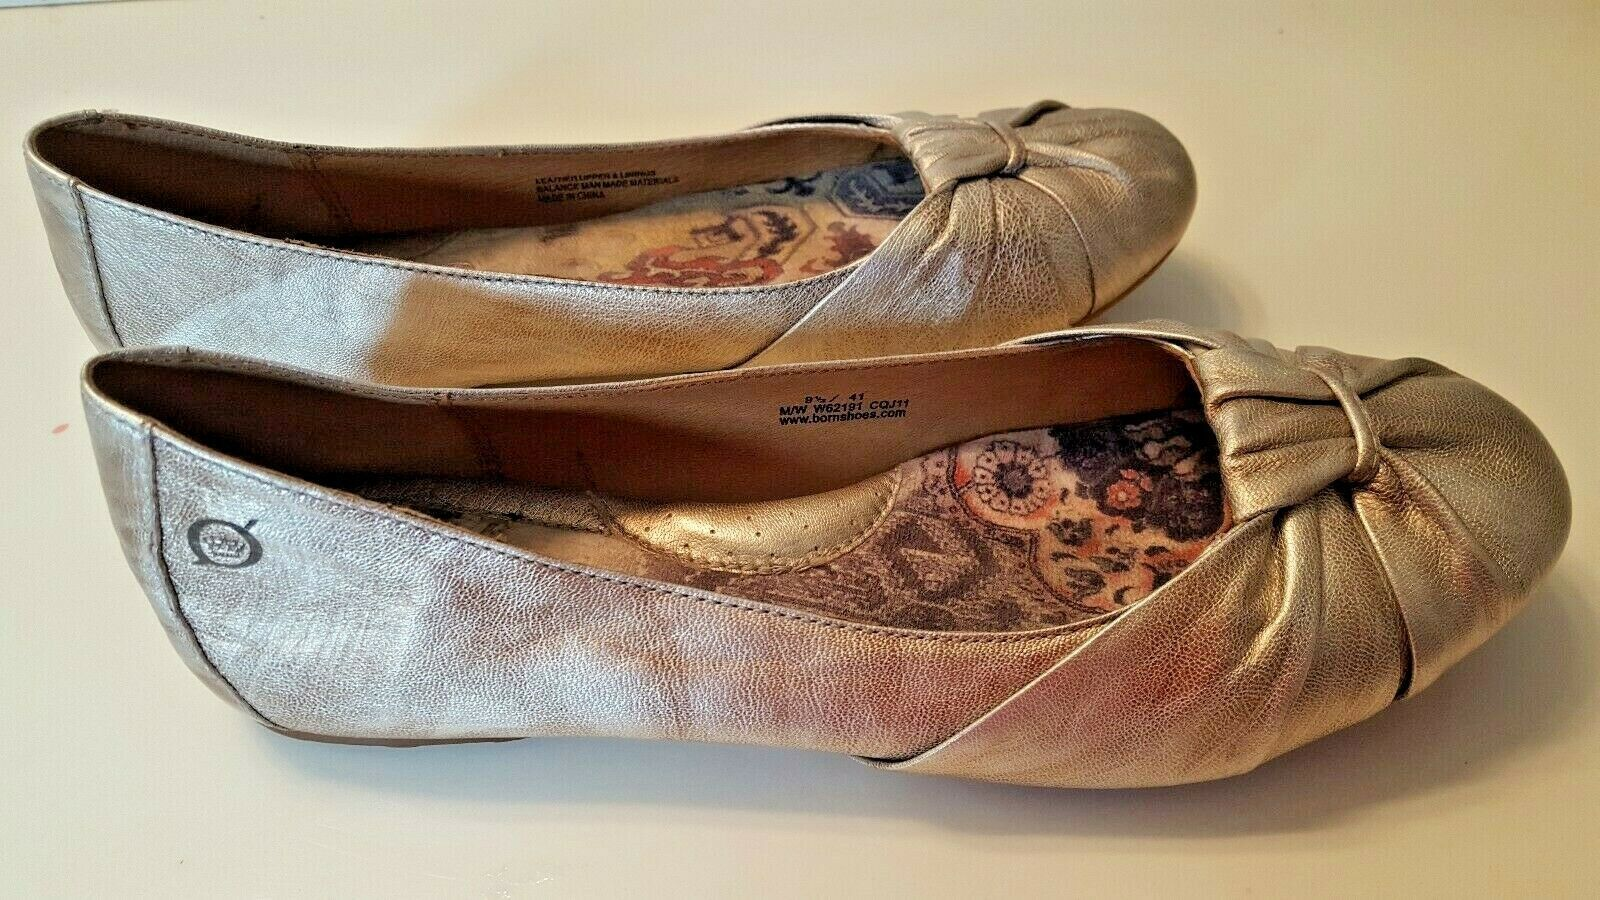 BORN Women's Slip On Leather Uppers Flats Shoes Size 9.5 Bronze